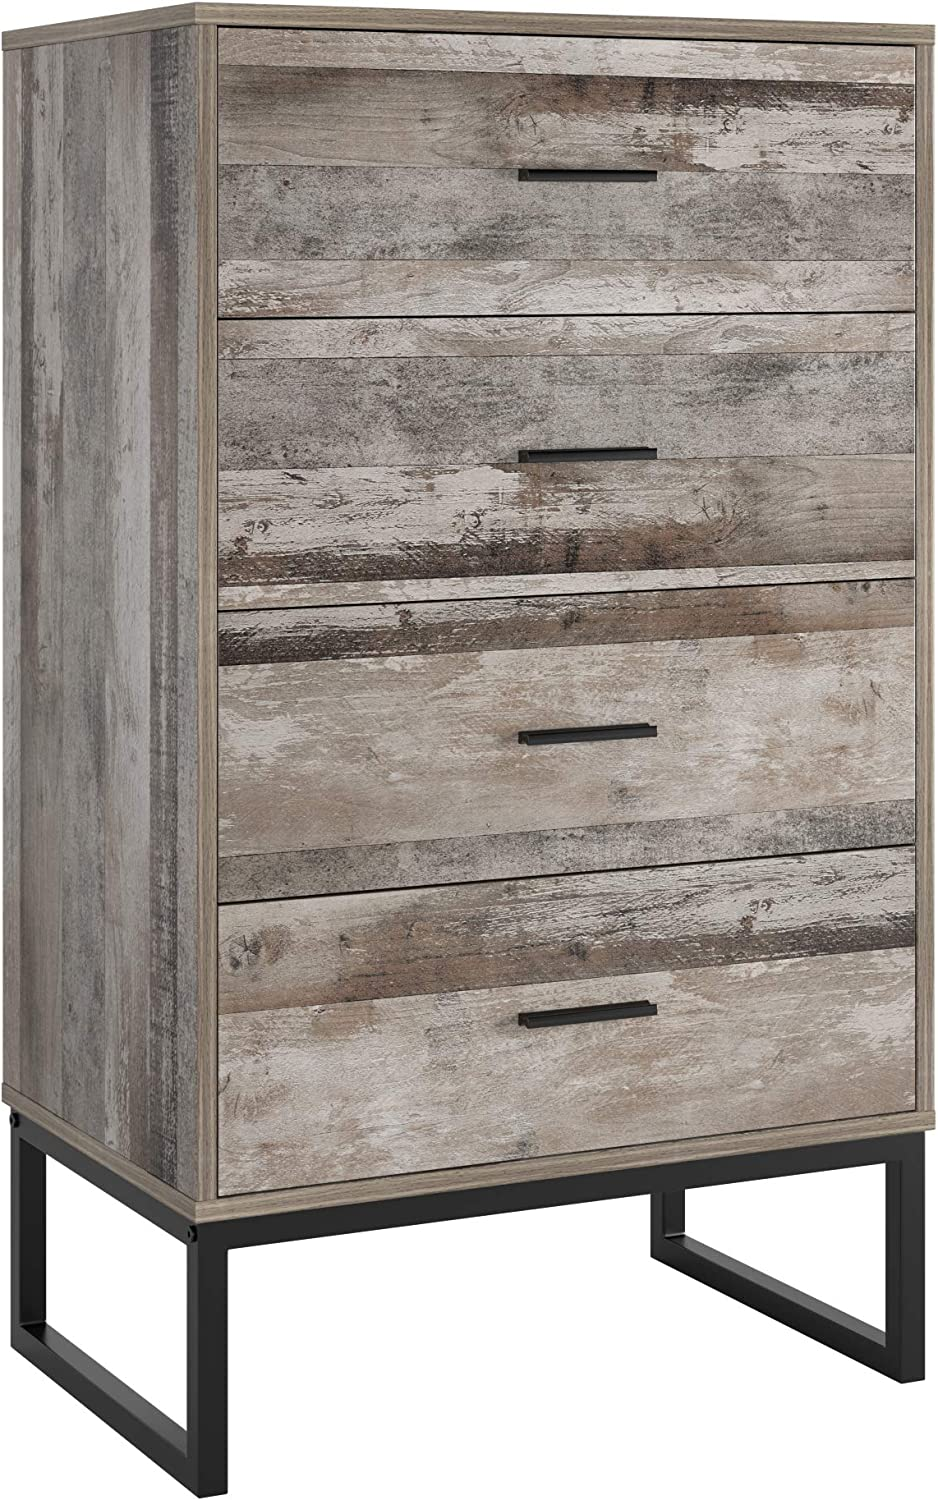 Homfa 4 Drawer Chest, Modern Storage Dresser with Large Drawer Space and Steel Legs Large Tall Nightstand with Handles Bathroom Floor Cabinet End Table Cabinet for Home Office, 40.2Hx23.6Lx15.6W in